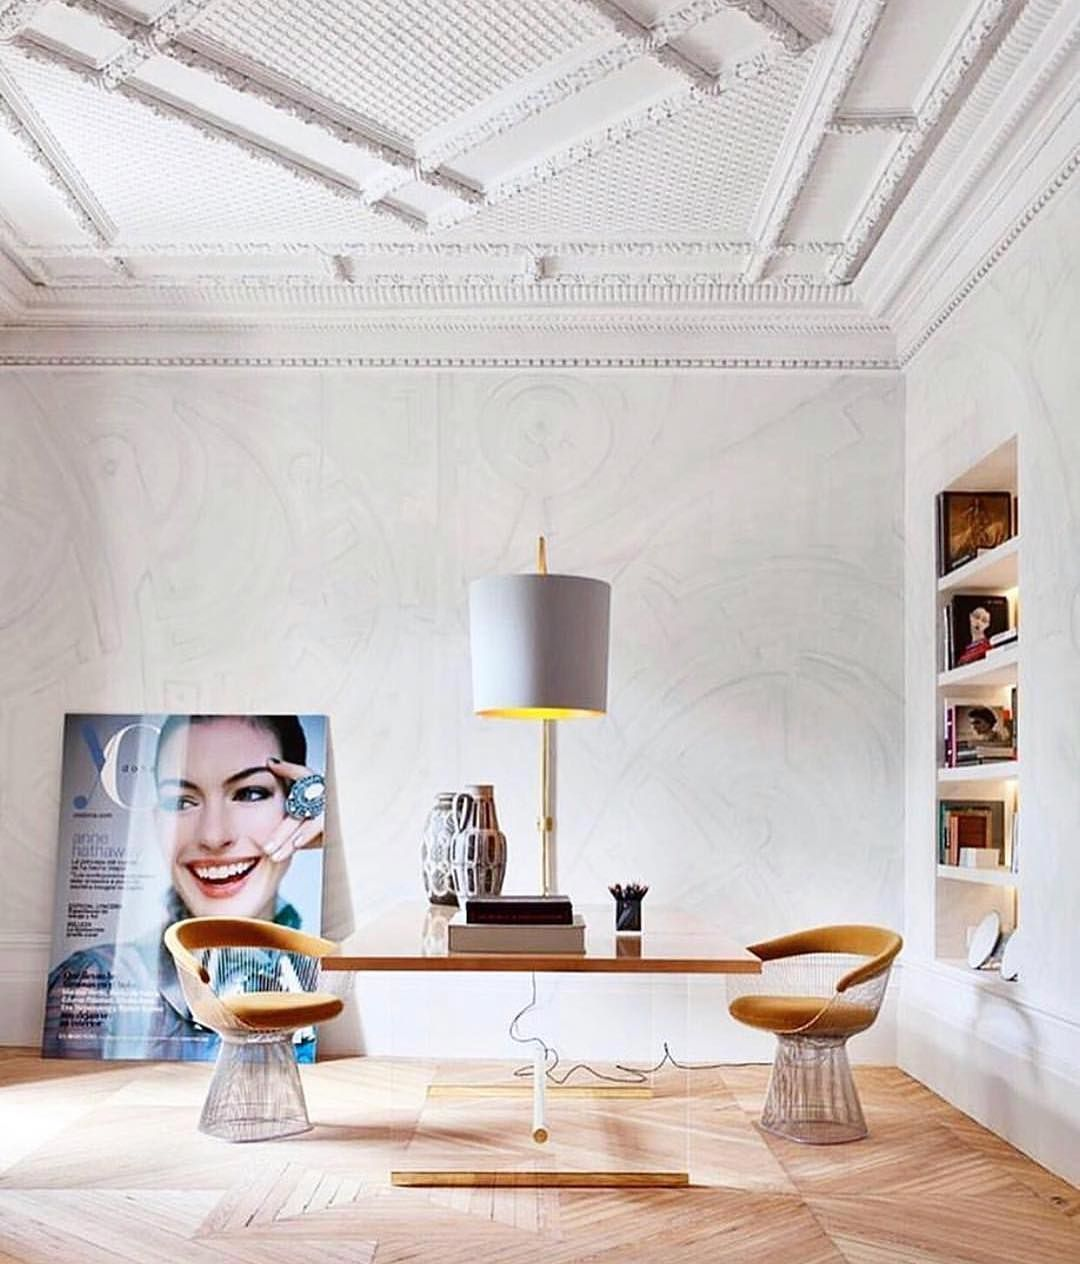 Beautiful modern dining room design ideas stylish interior classic interior warren platner knoll